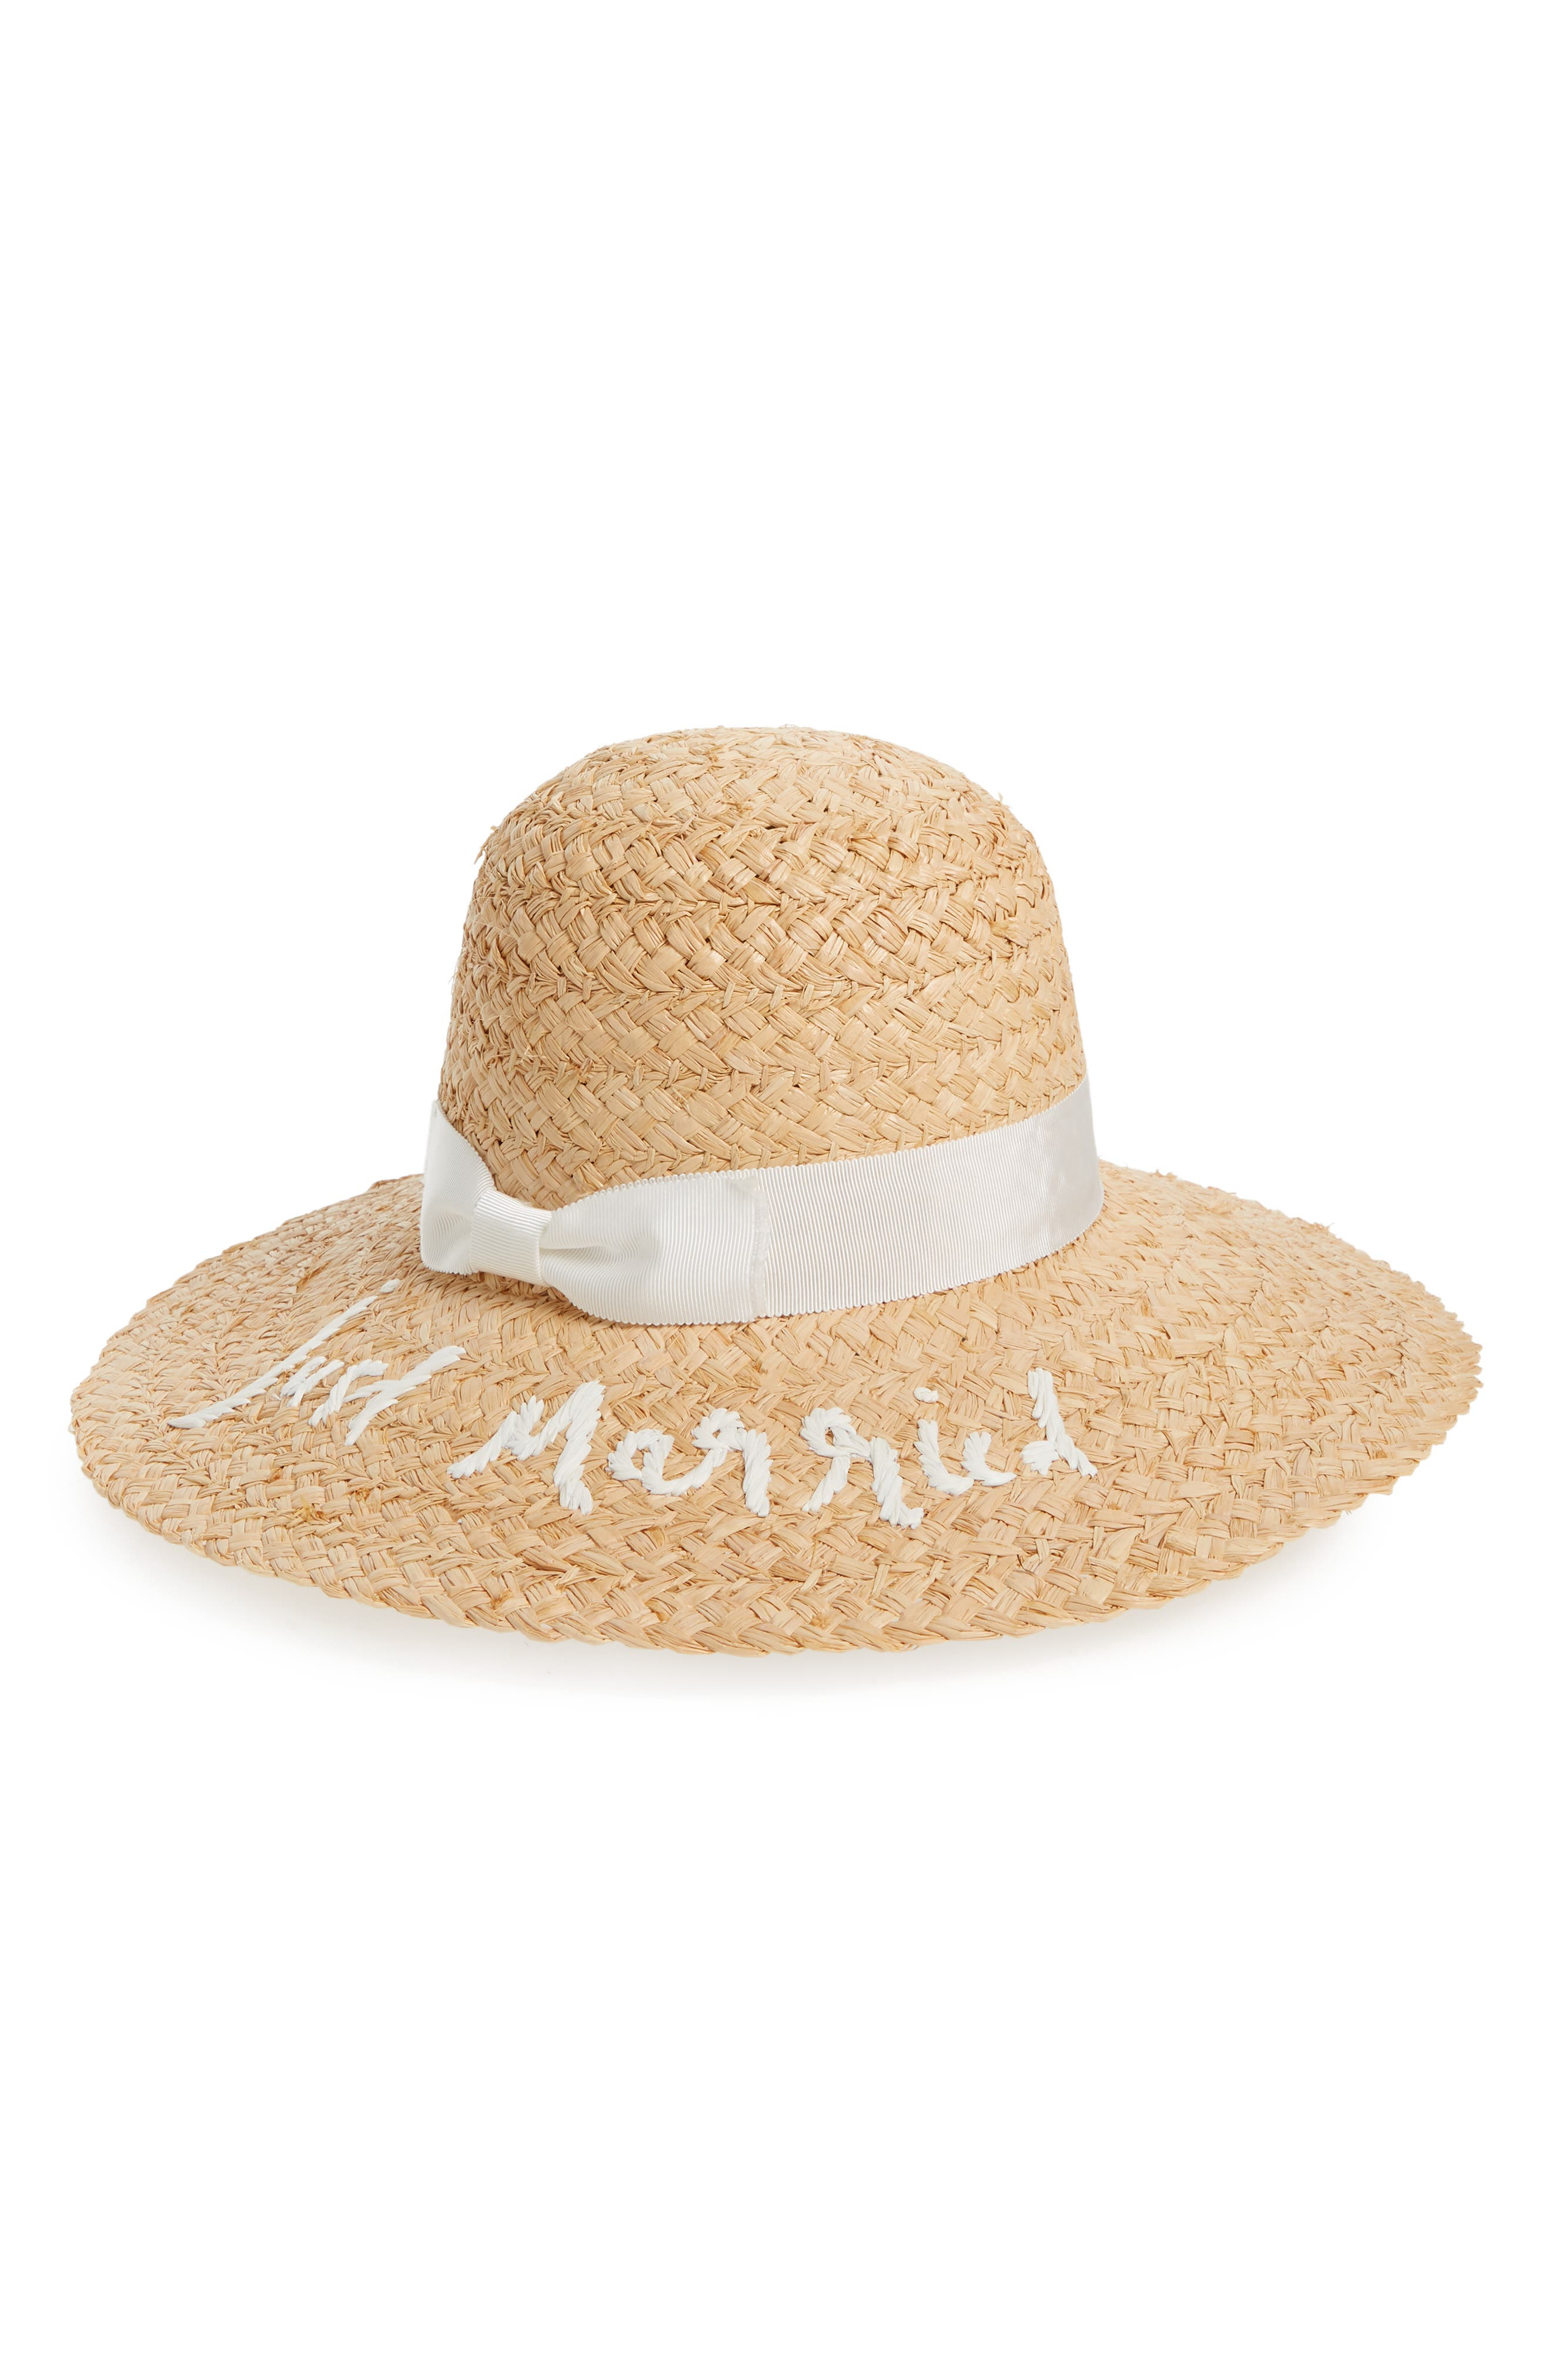 kate spade new york just married straw hat